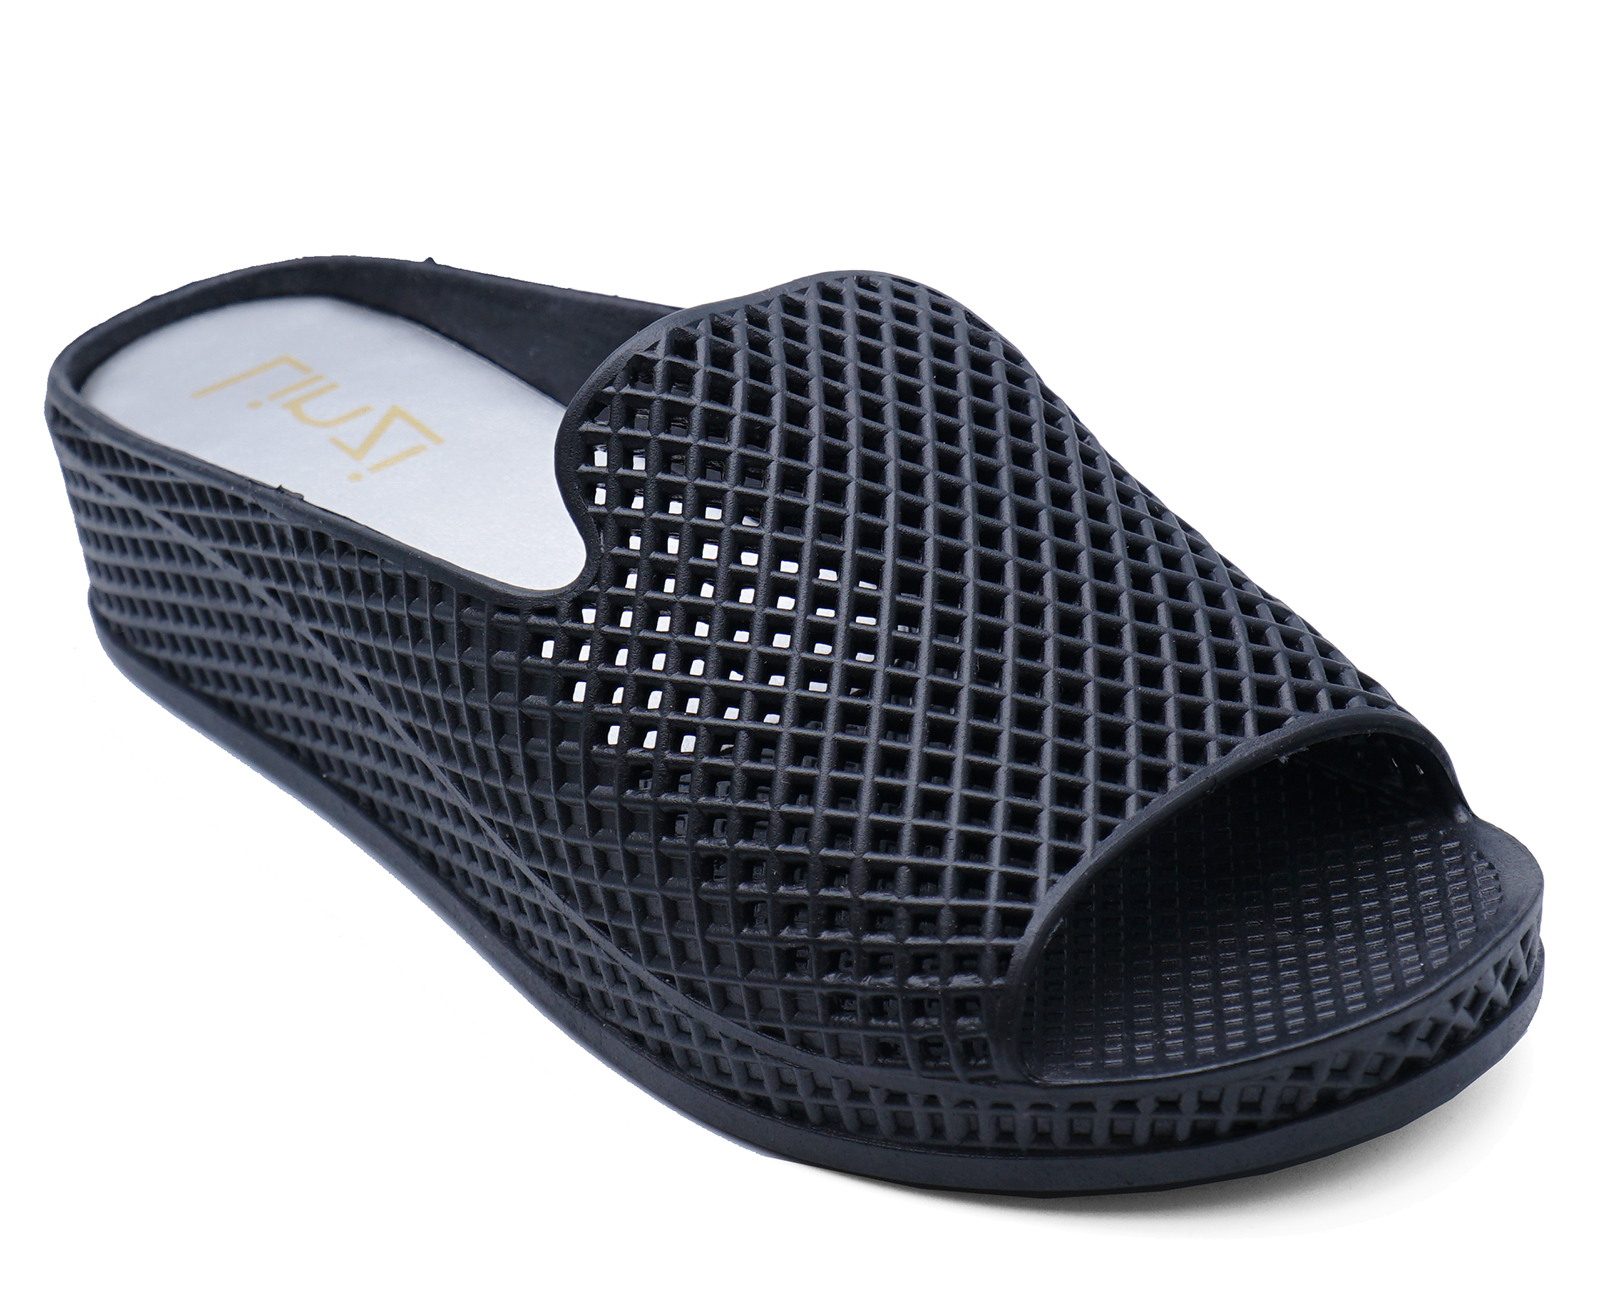 LADIES BLACK SLIP-ON OPEN-TOE COMFY JELLY MULES WEDGES SLIDER SANDALS SHOES 4-8